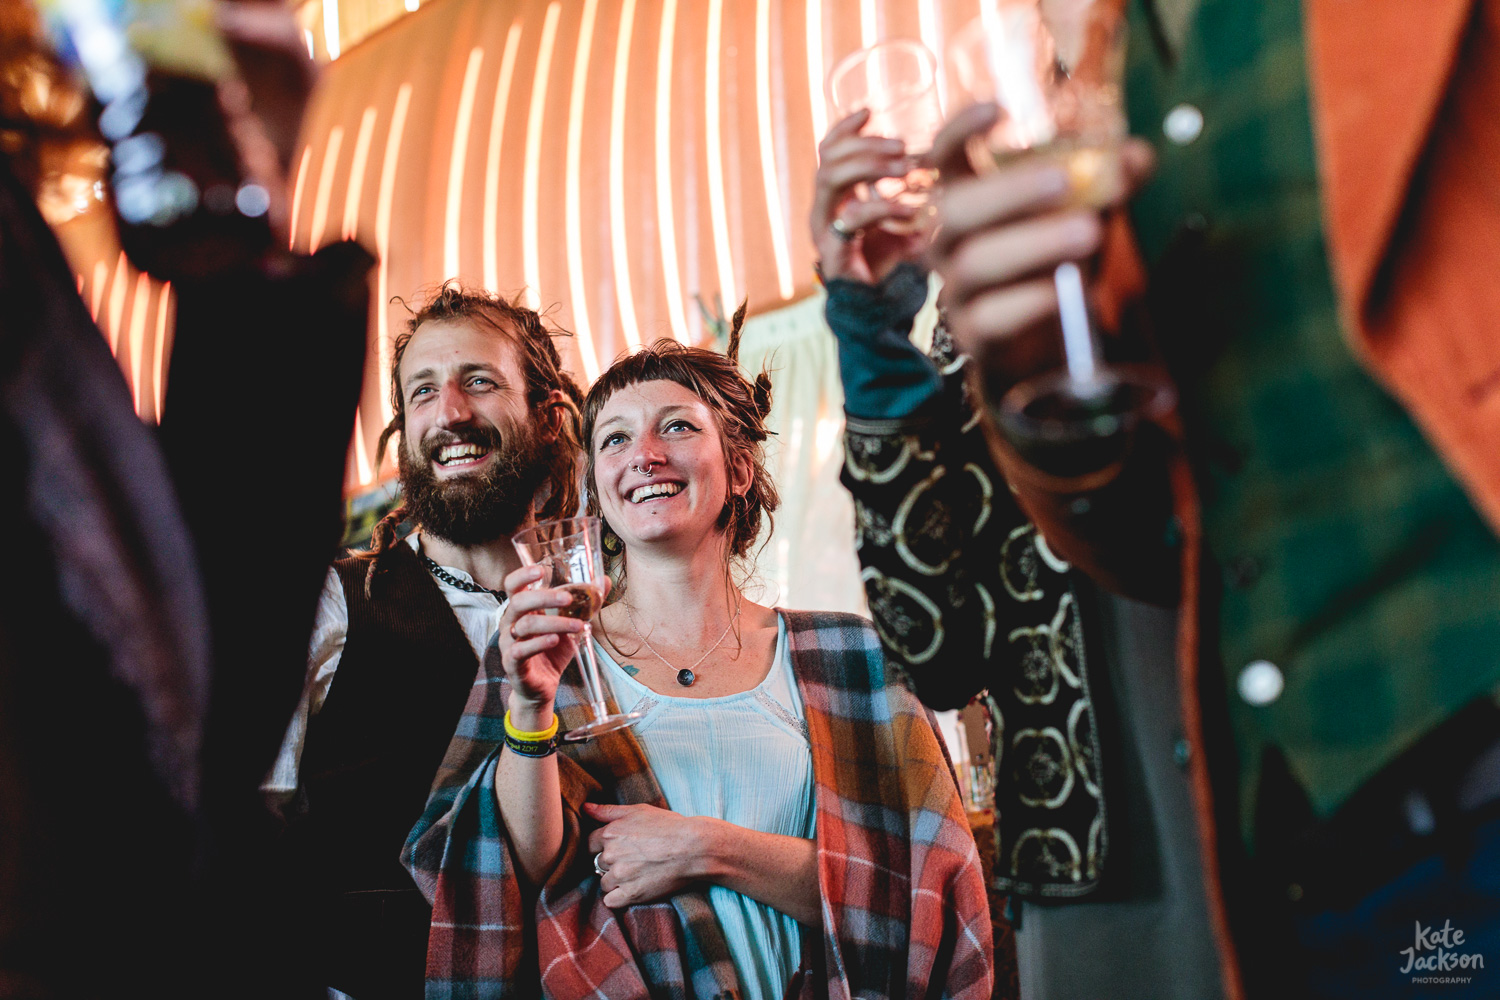 Wedding guests standing and raising a glass in barn at fun diy festival wedding | Shropshire Wedding Photographer